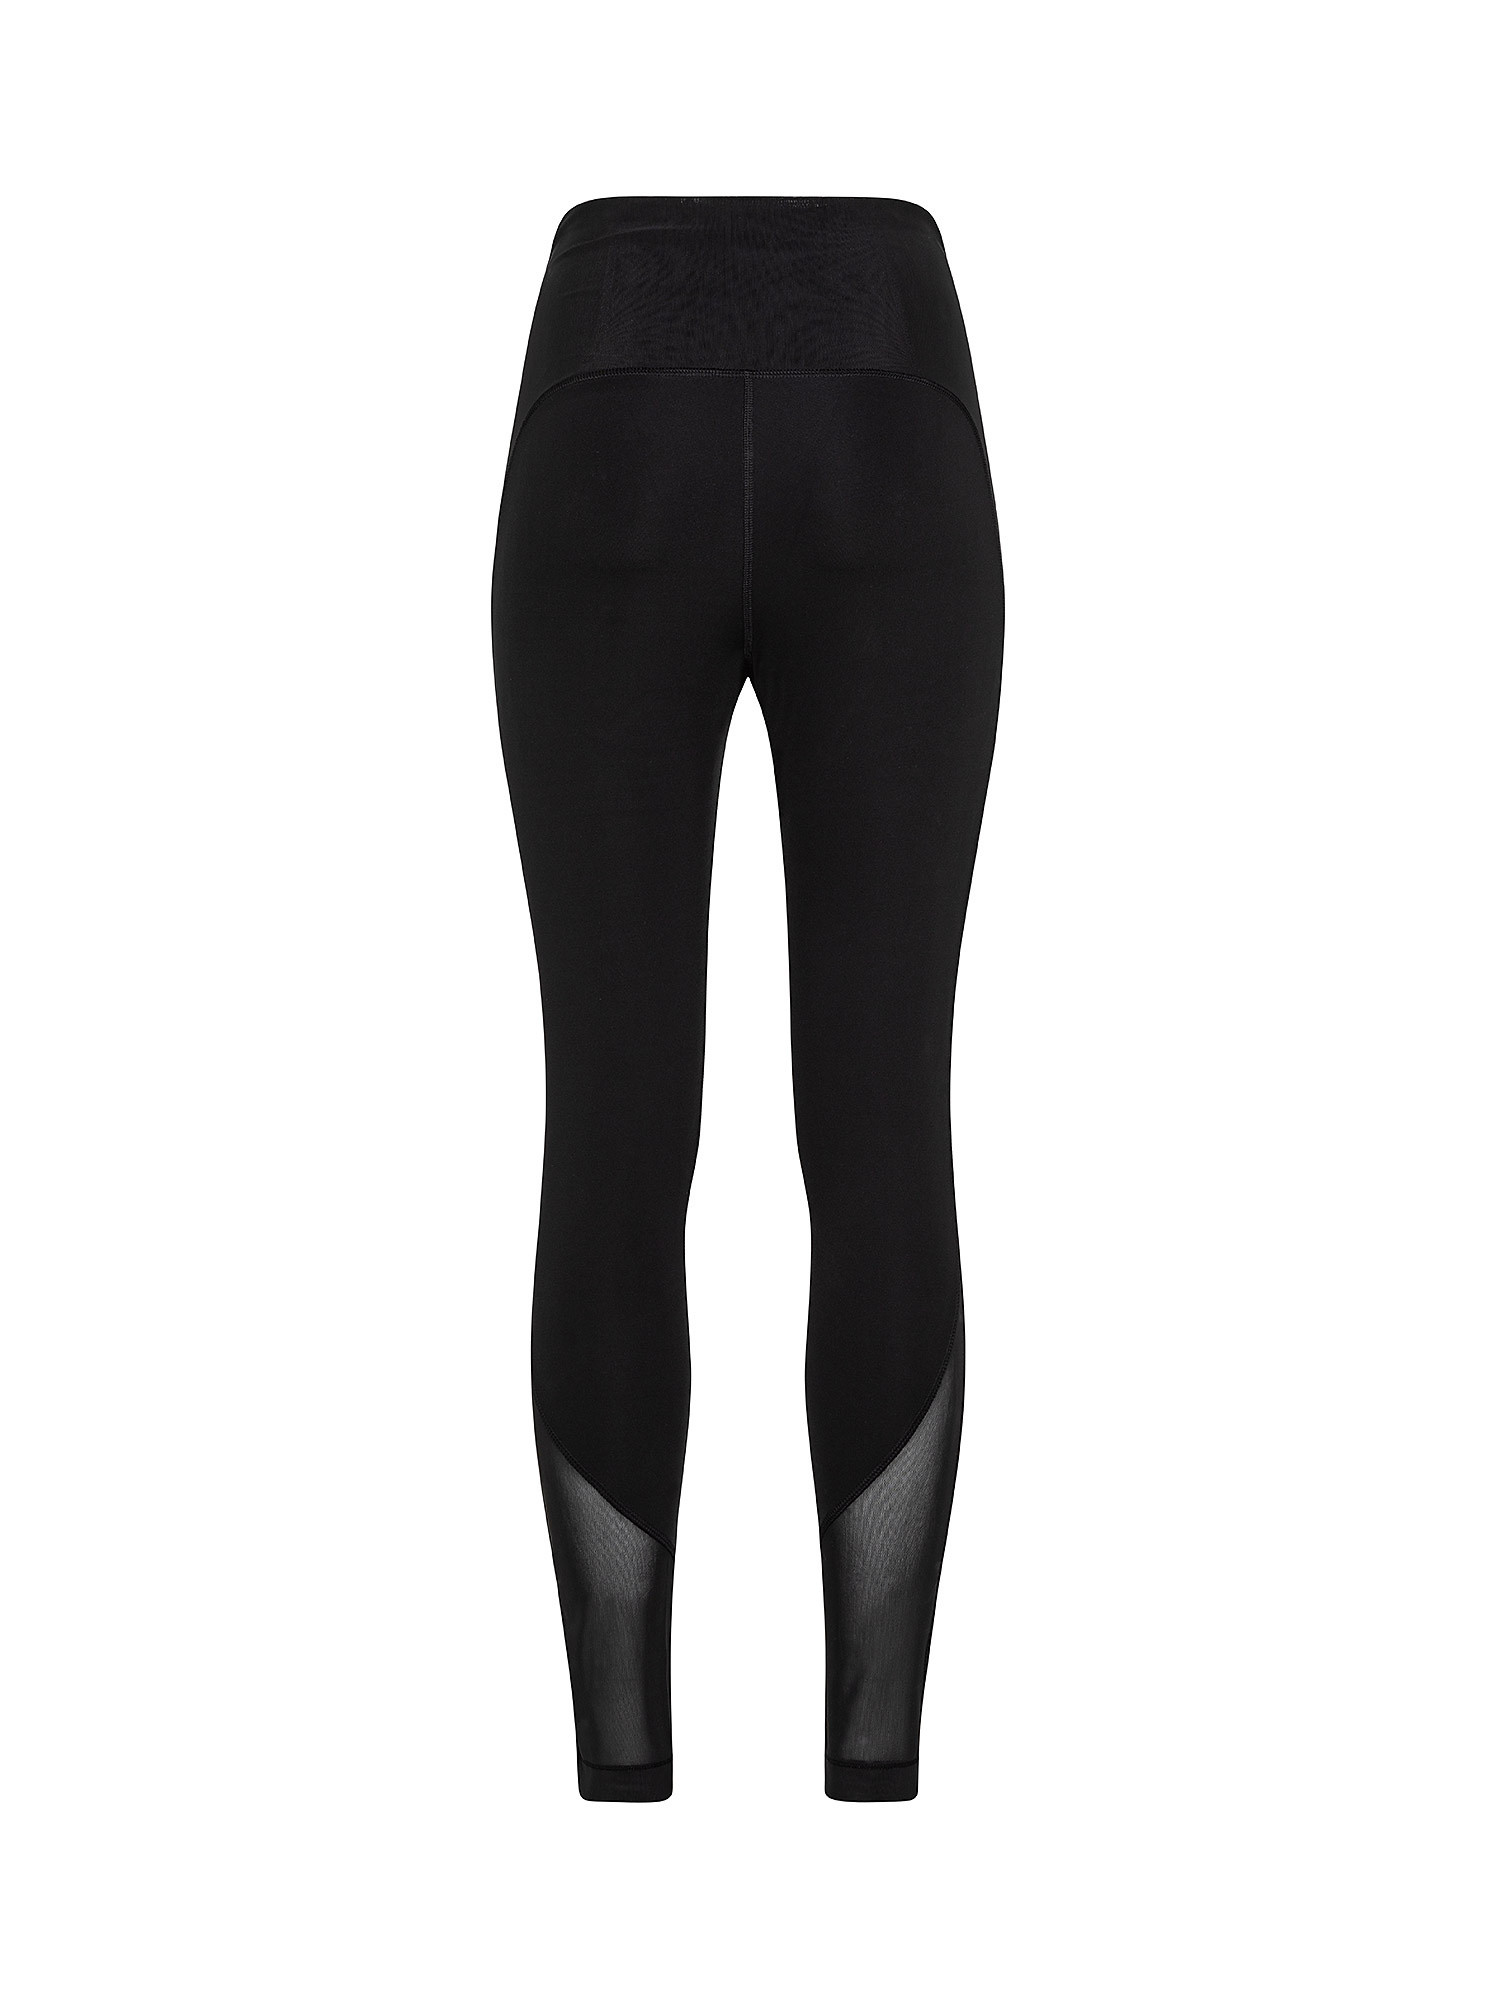 Leggings Lux High-Rise Perform, Nero, large image number 1